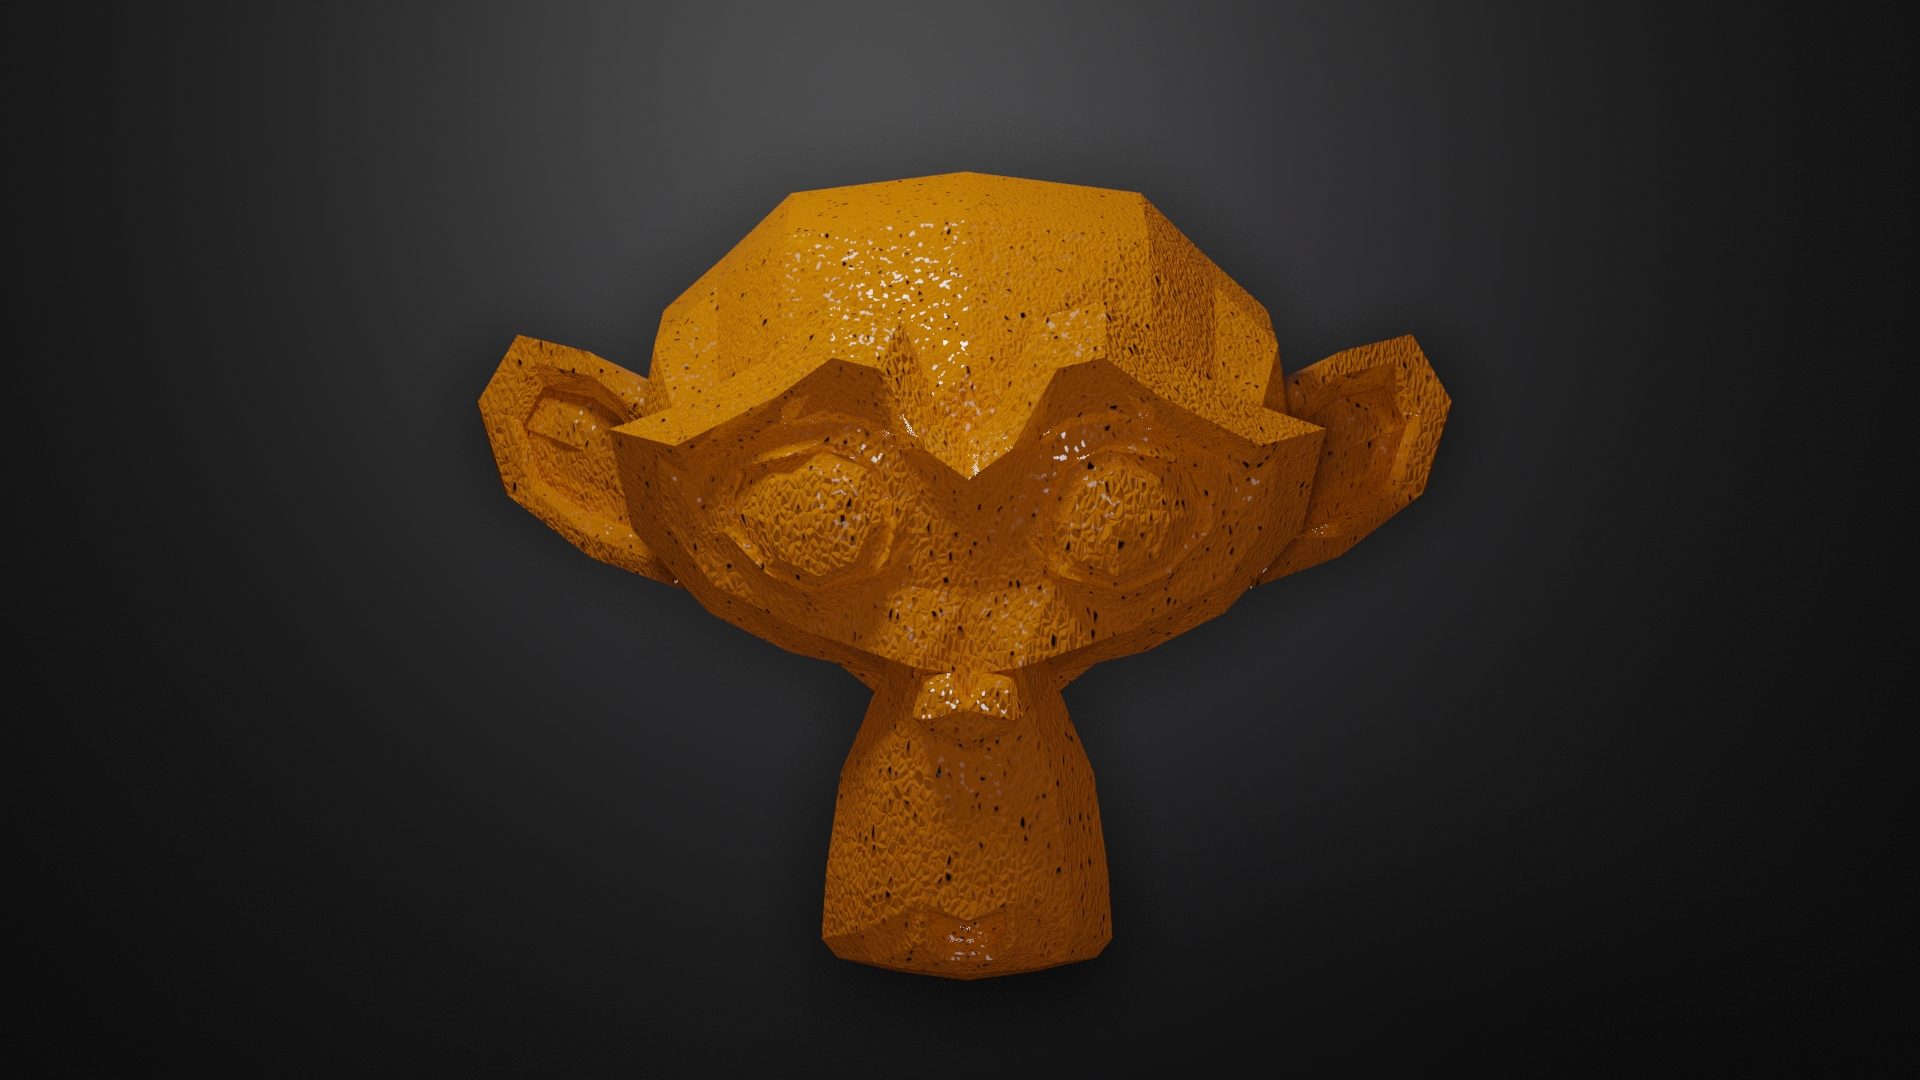 ORANGE MECH METAL preview image 3